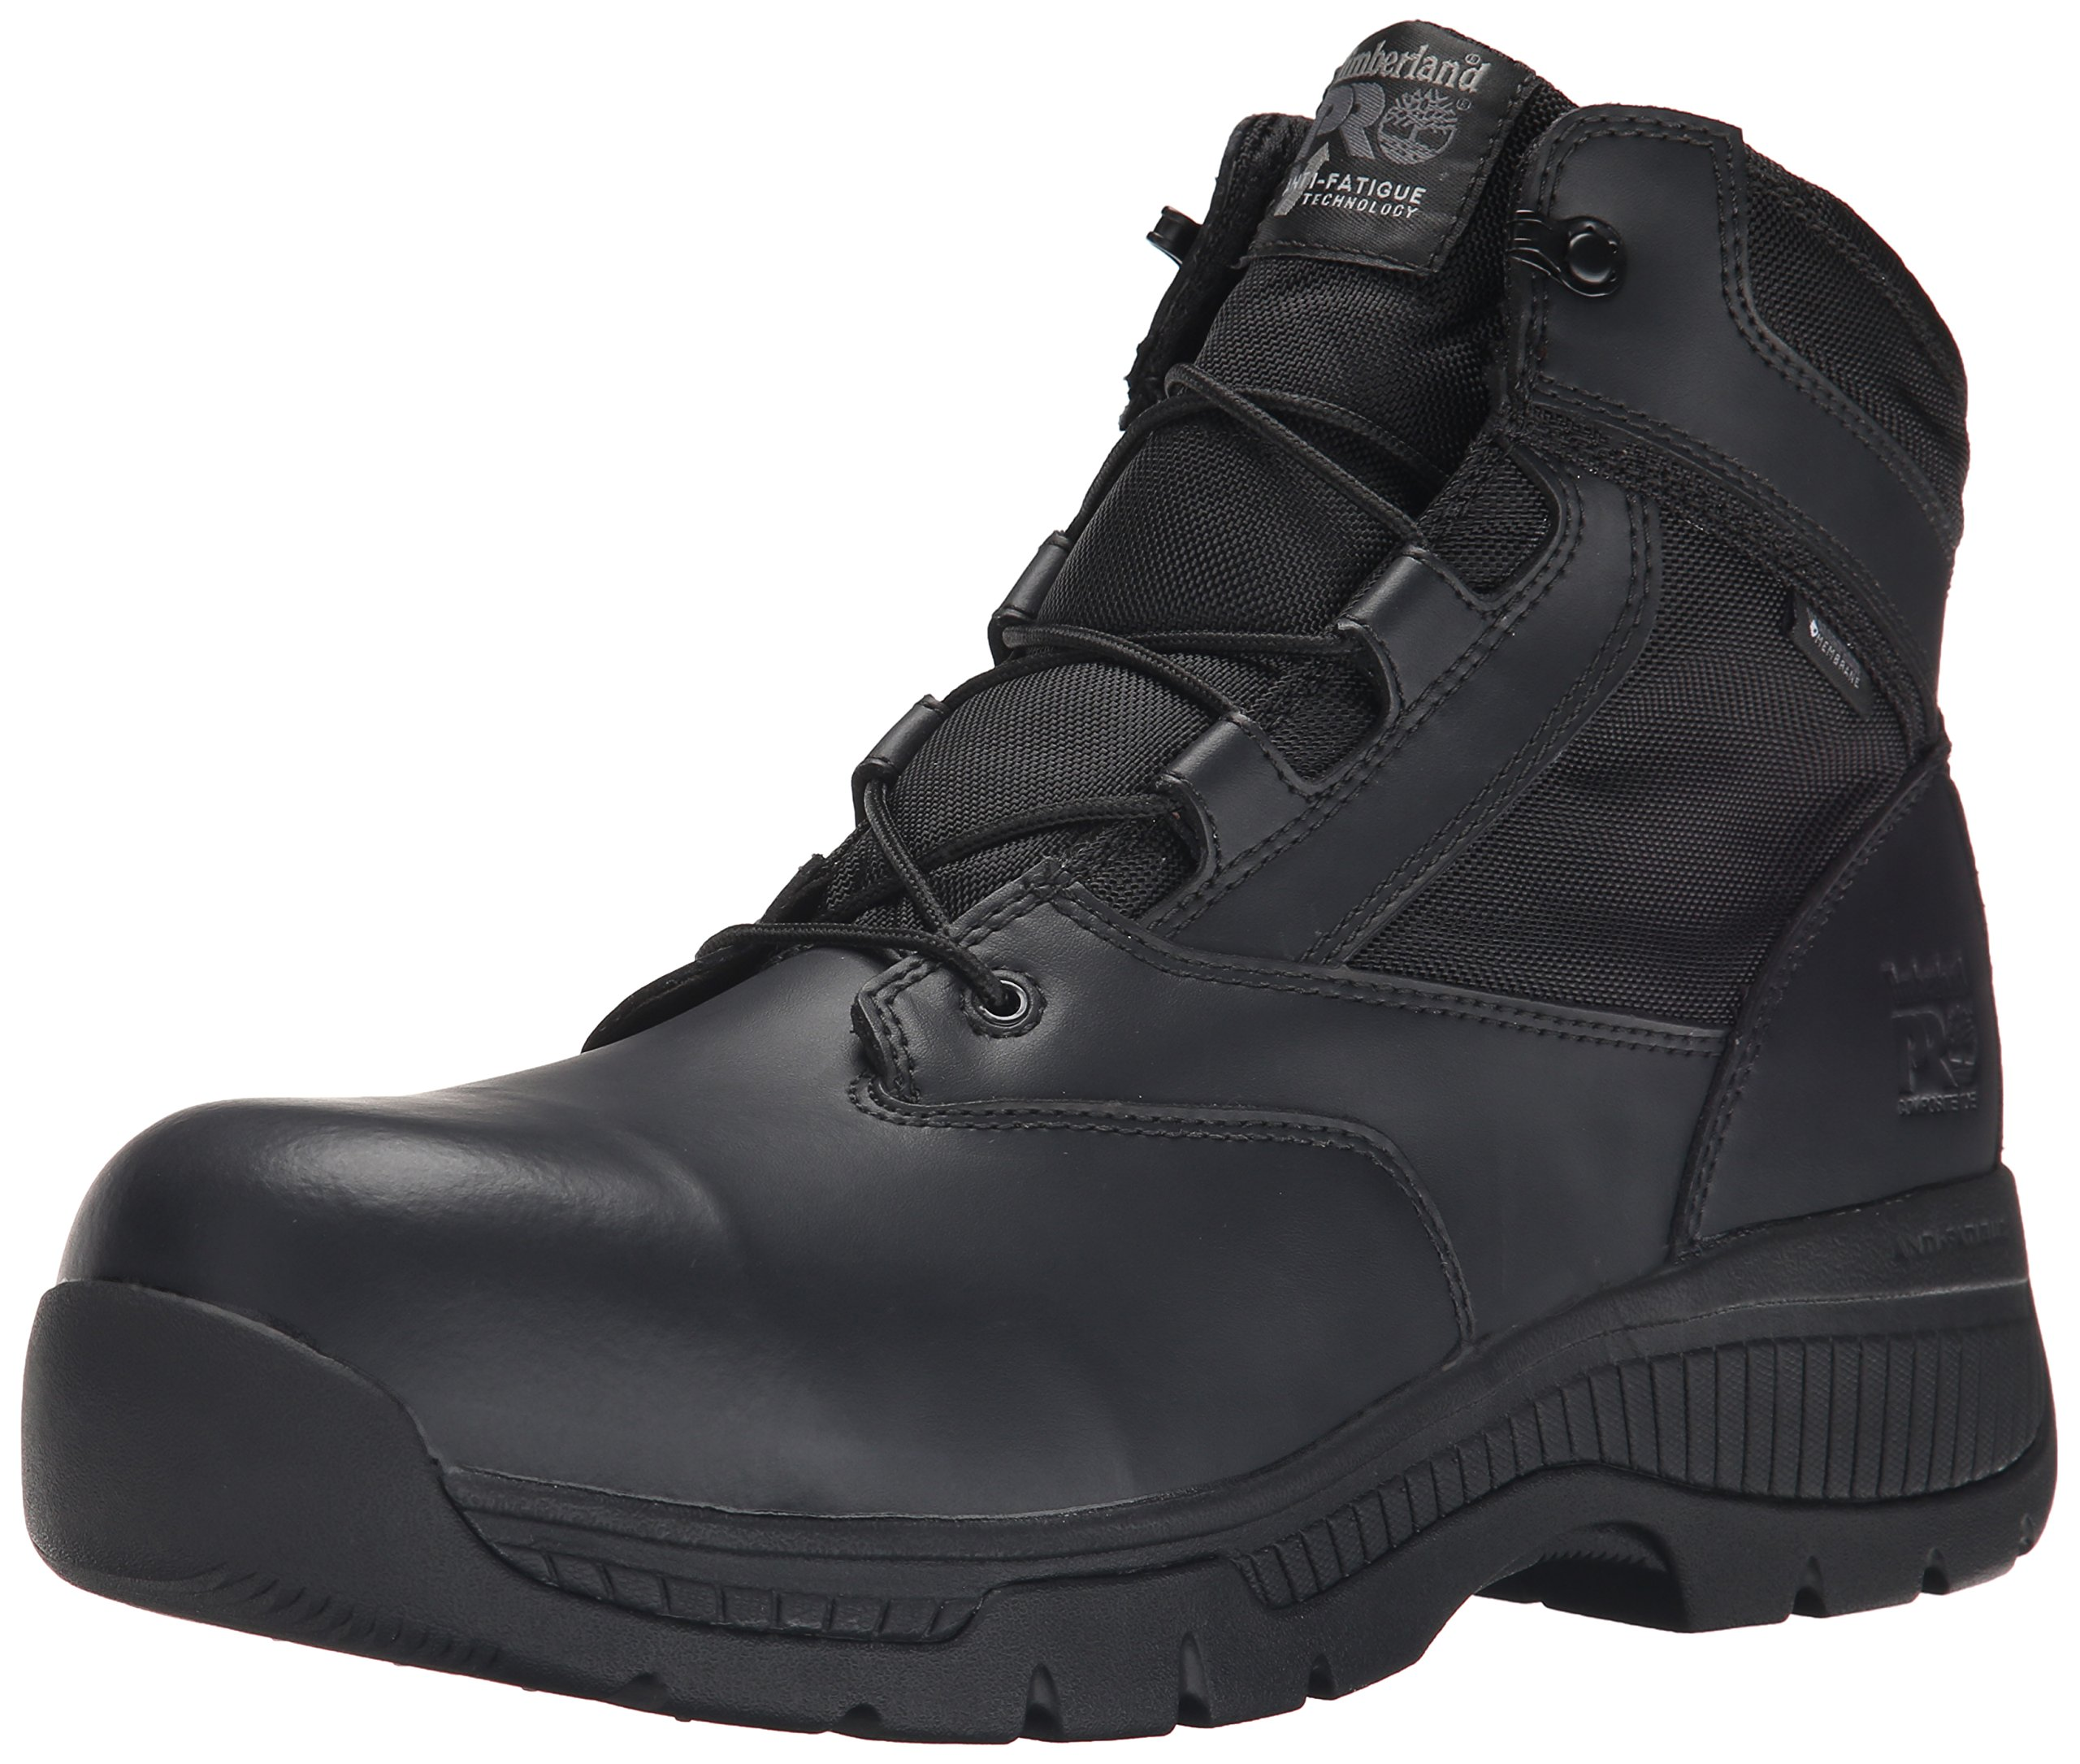 Timberland PRO Men's 6 inch Valor Comp Toe Waterproof Side Zip Work Boot, Black Smooth Leather Ballistic Nylon, 8 W US